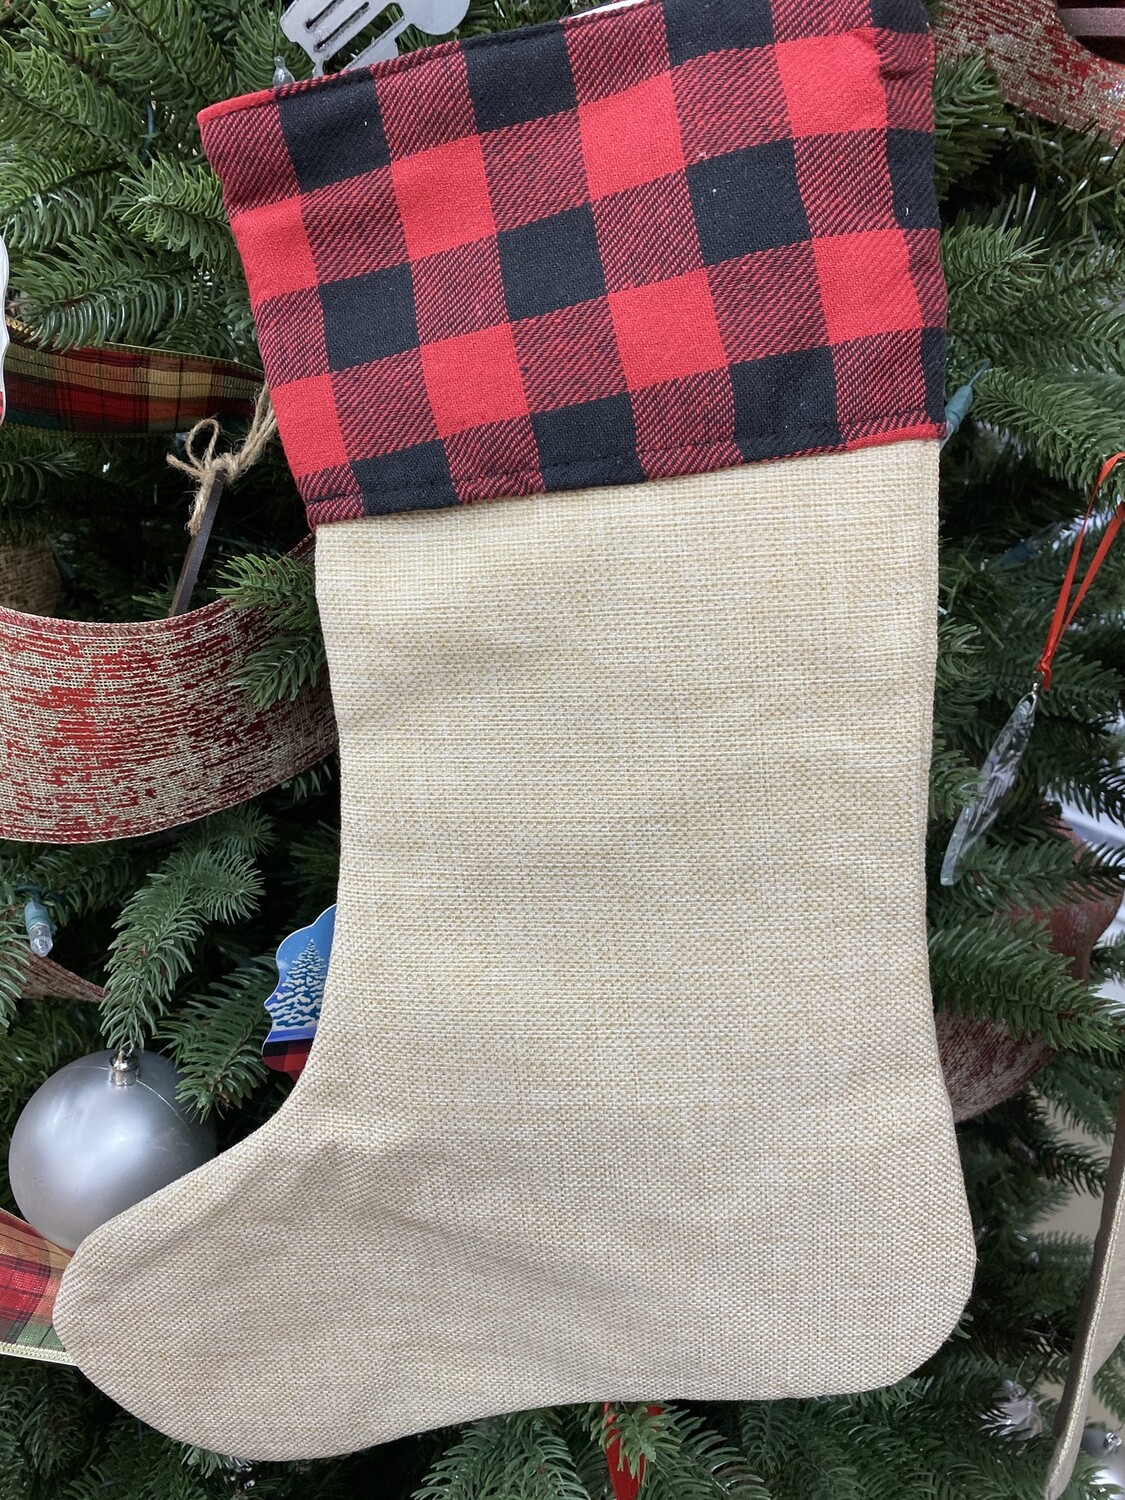 Red and black Christmas plaid stocking Sublimation blank Christmas linen stocking.